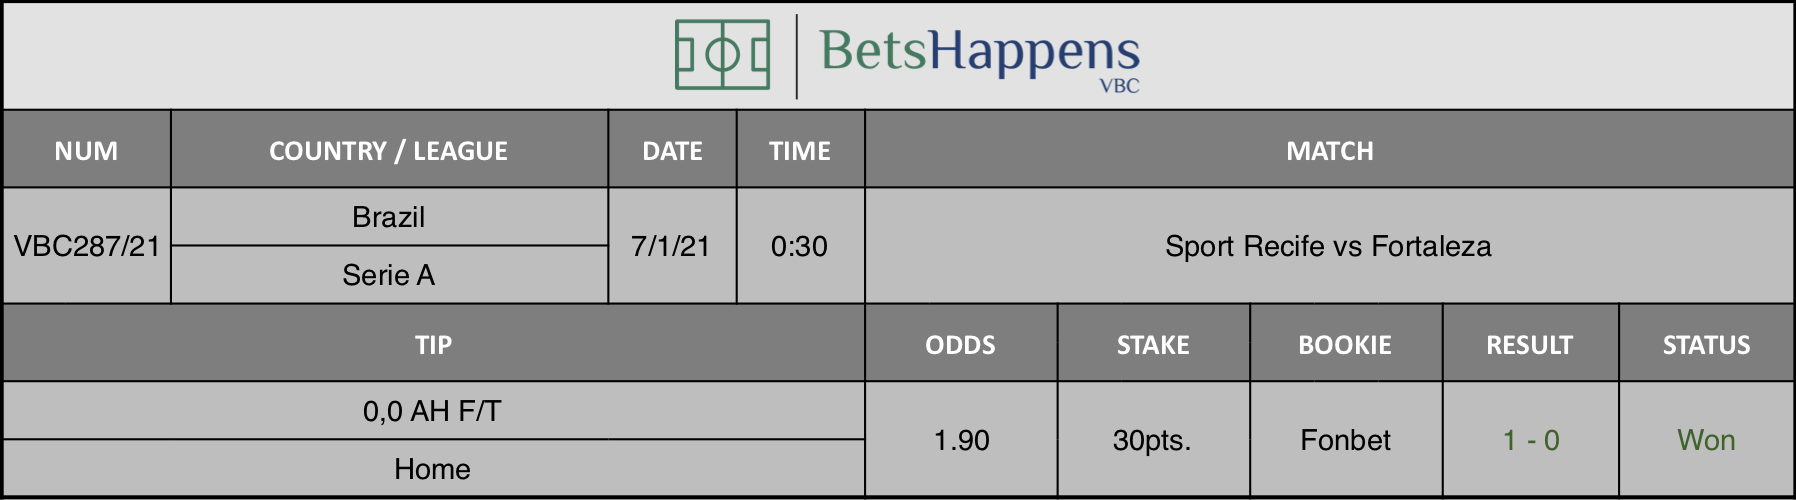 Results of our tip for the Sport Recife vs Fortaleza  match where 0,0 AH F/T  Home is recommended.